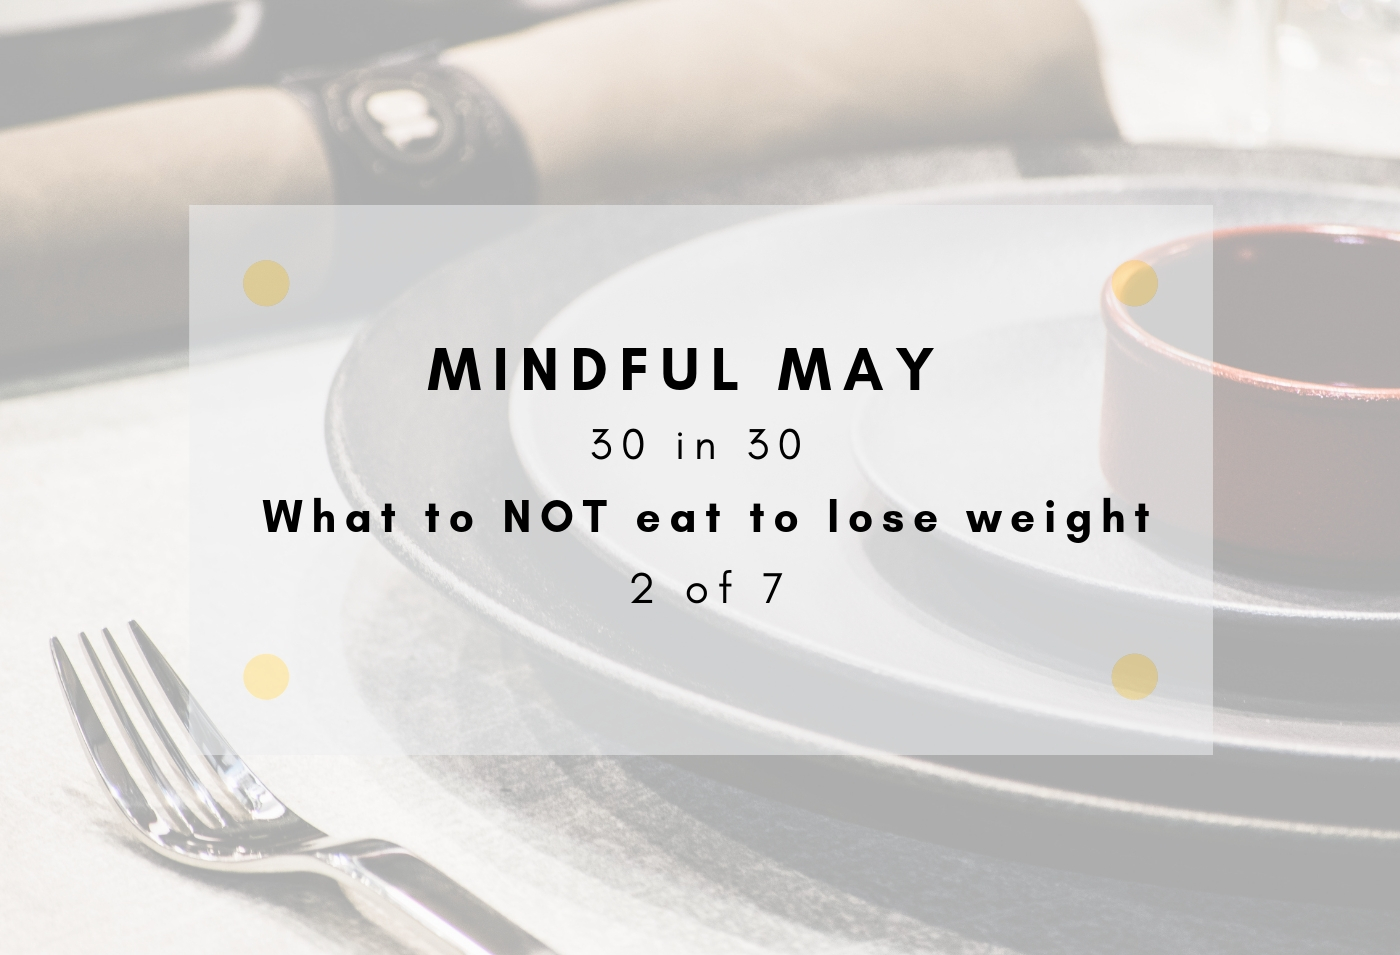 what to not eat to lose weight